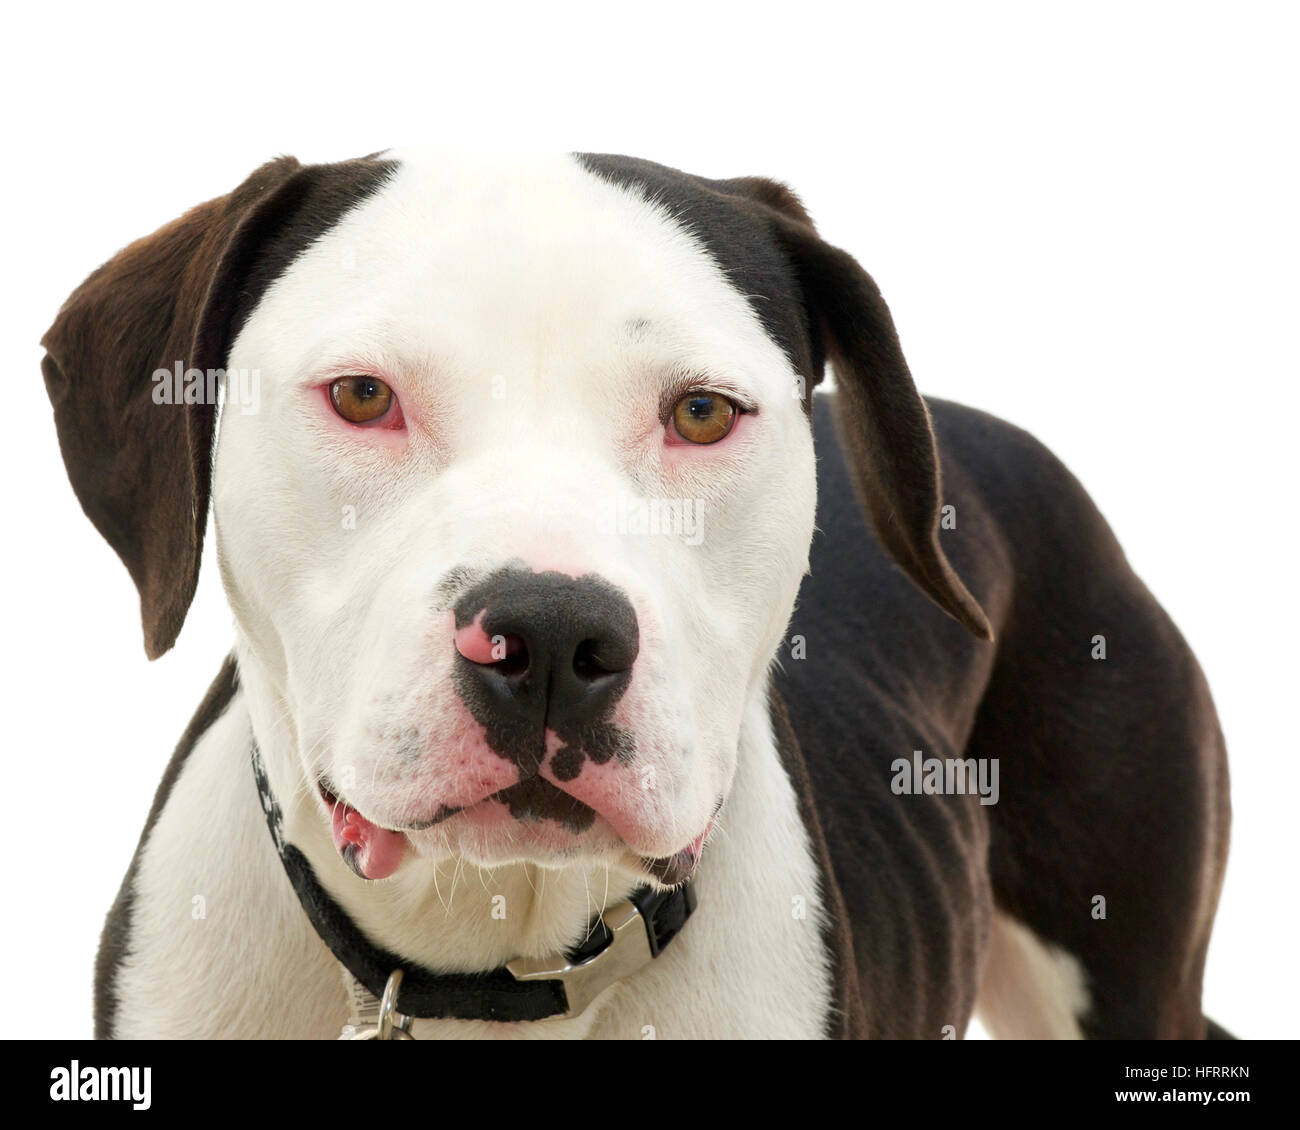 Brown and white american pit bull terrier with brown eyes, red sclera of eyes from cold virus, emaciated after being - Stock Image